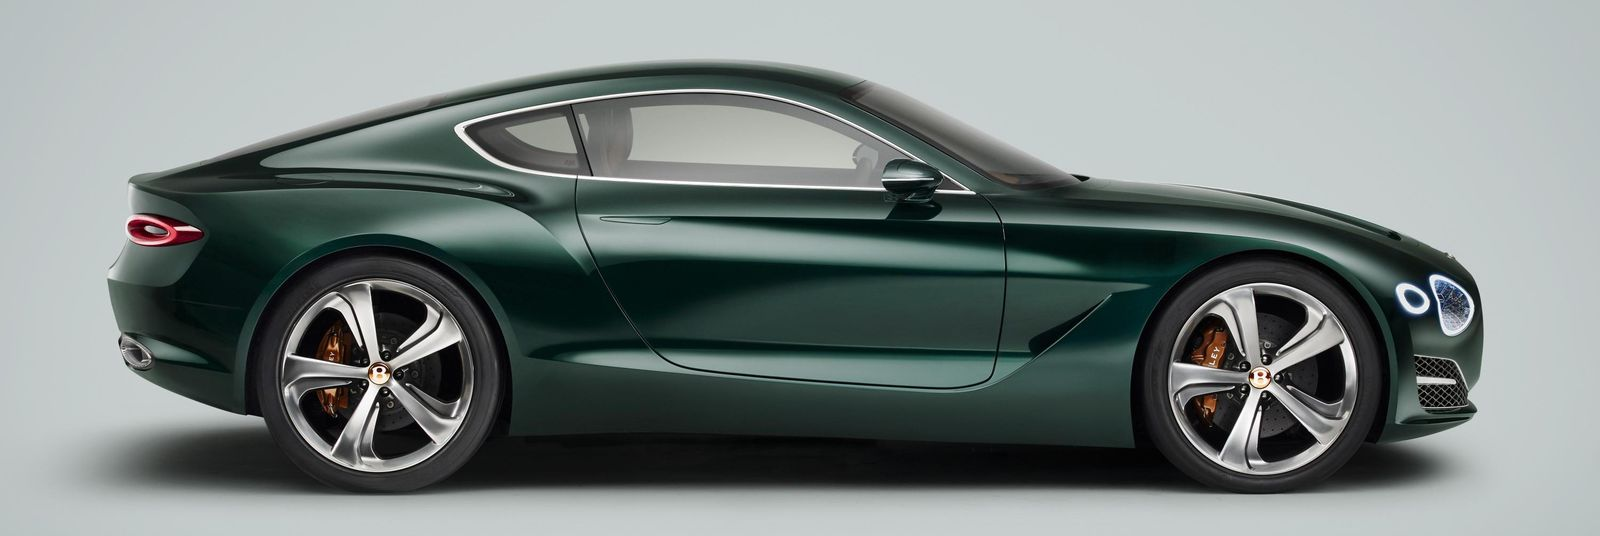 The new barnato is going to be a sporting coupe a little smaller than the continental gt but sitting alongside it in the bentley line up